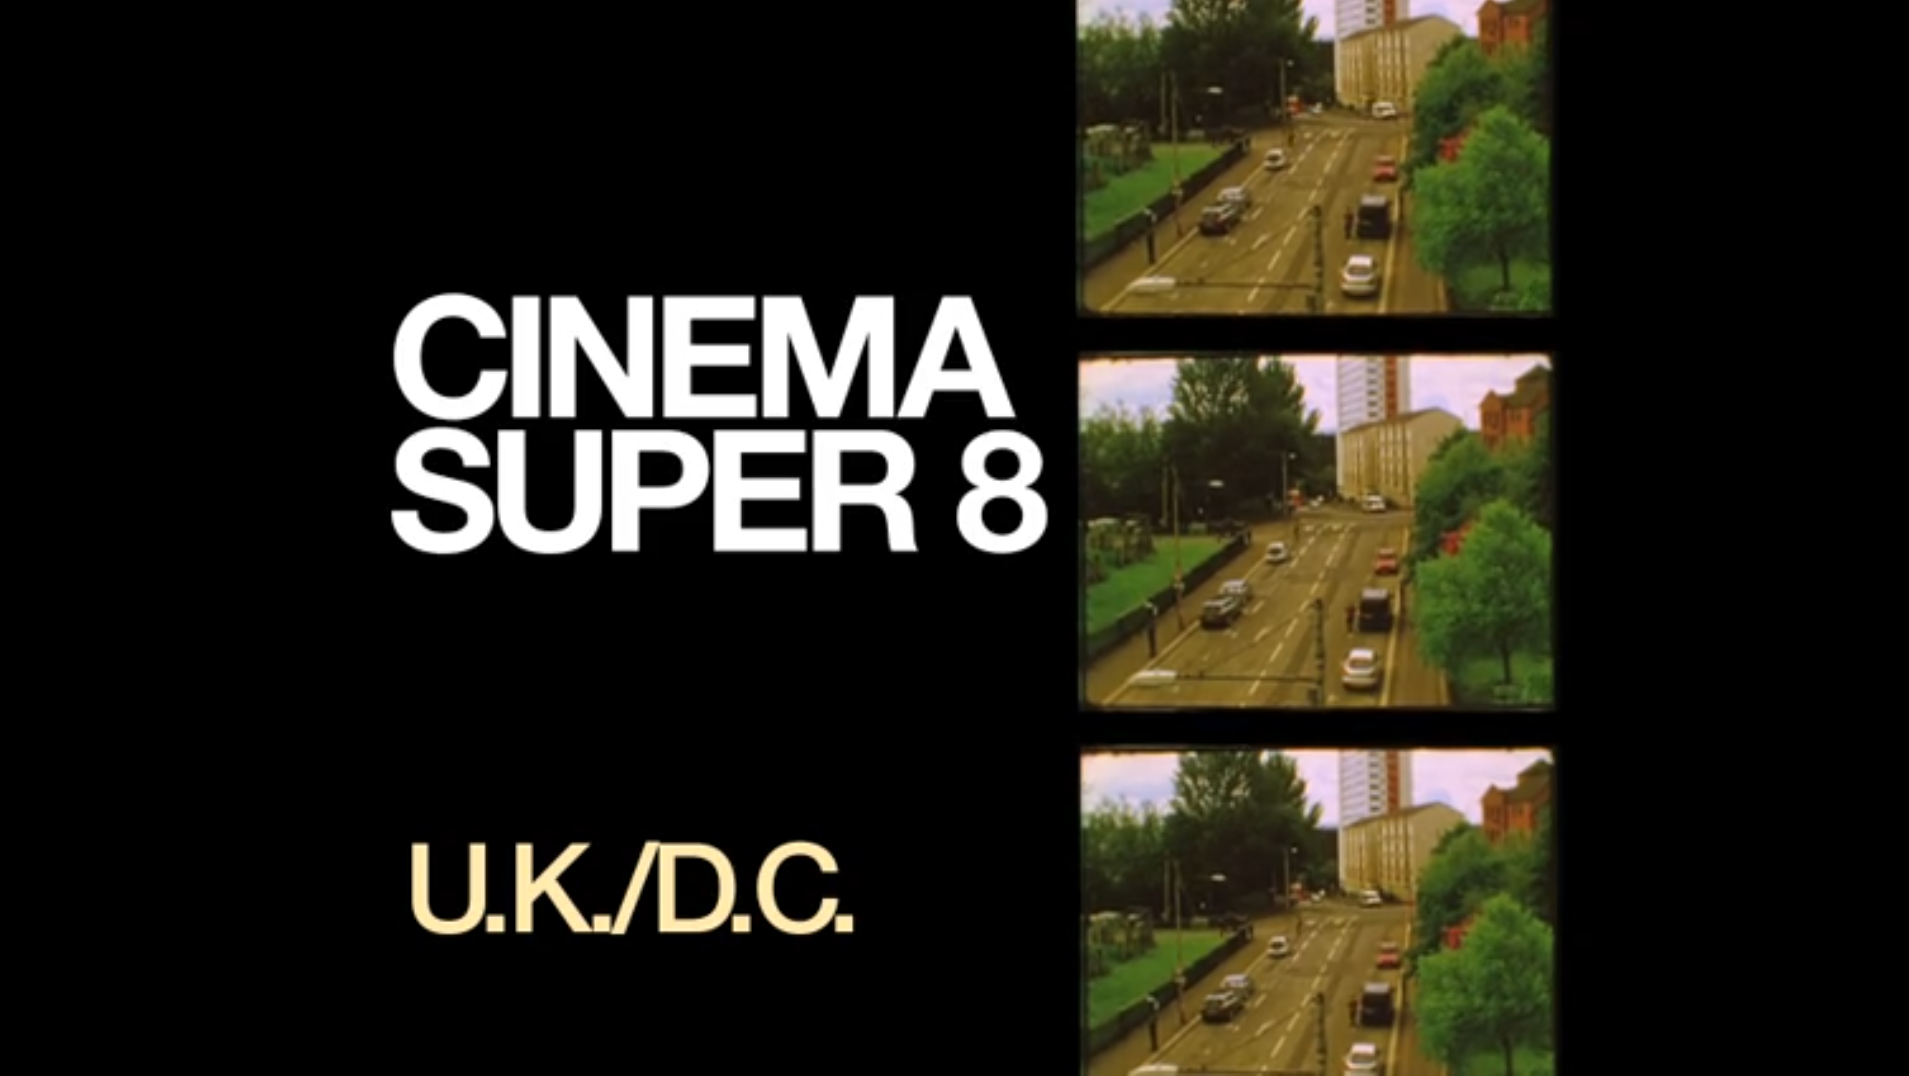 A still from the opening credits of  Cinema Super 8,  circa 2013